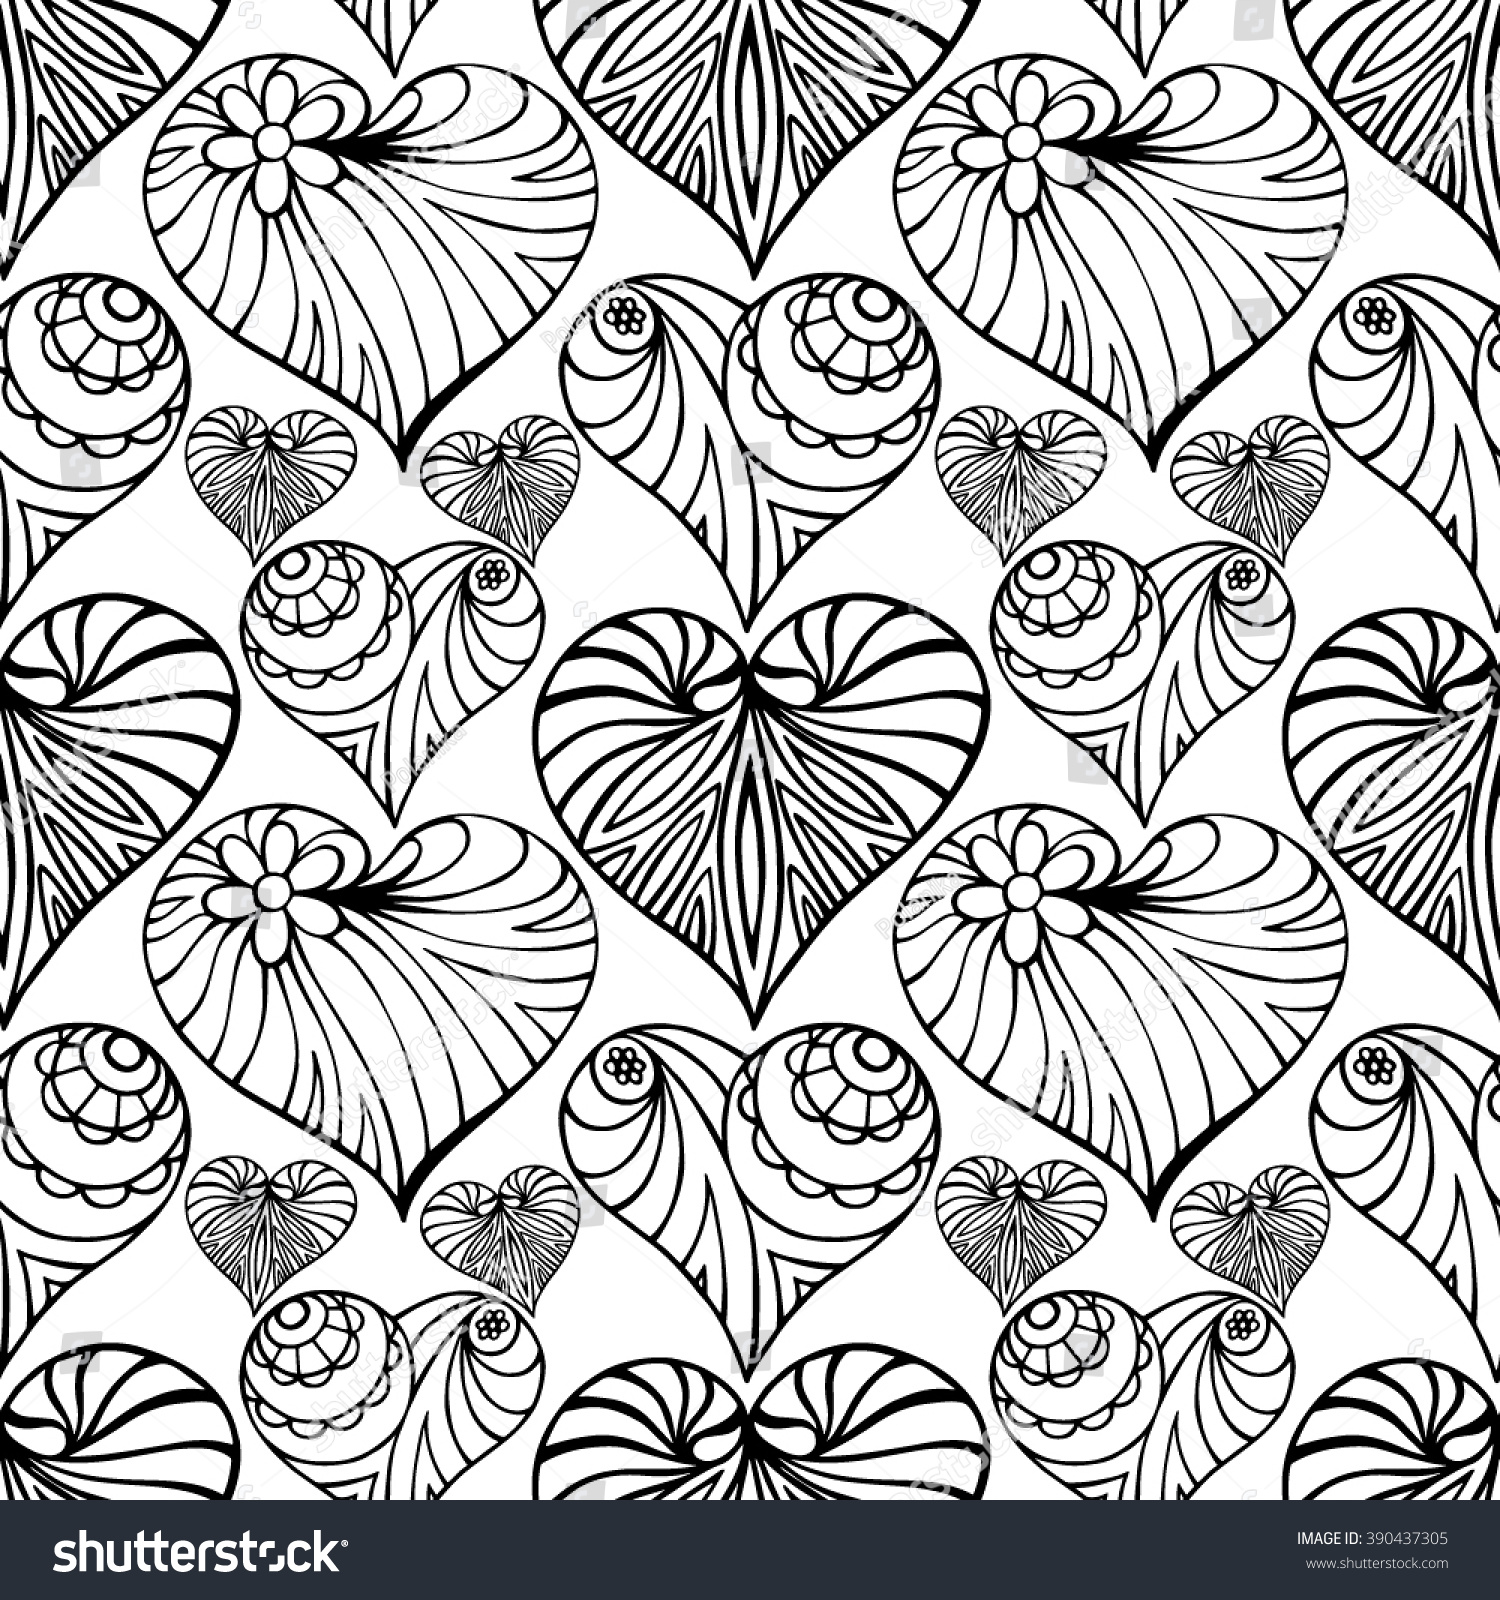 Hand Drawn Zentangle Heart. Seamless Pattern For Adult Coloring Pages, Card  For St.